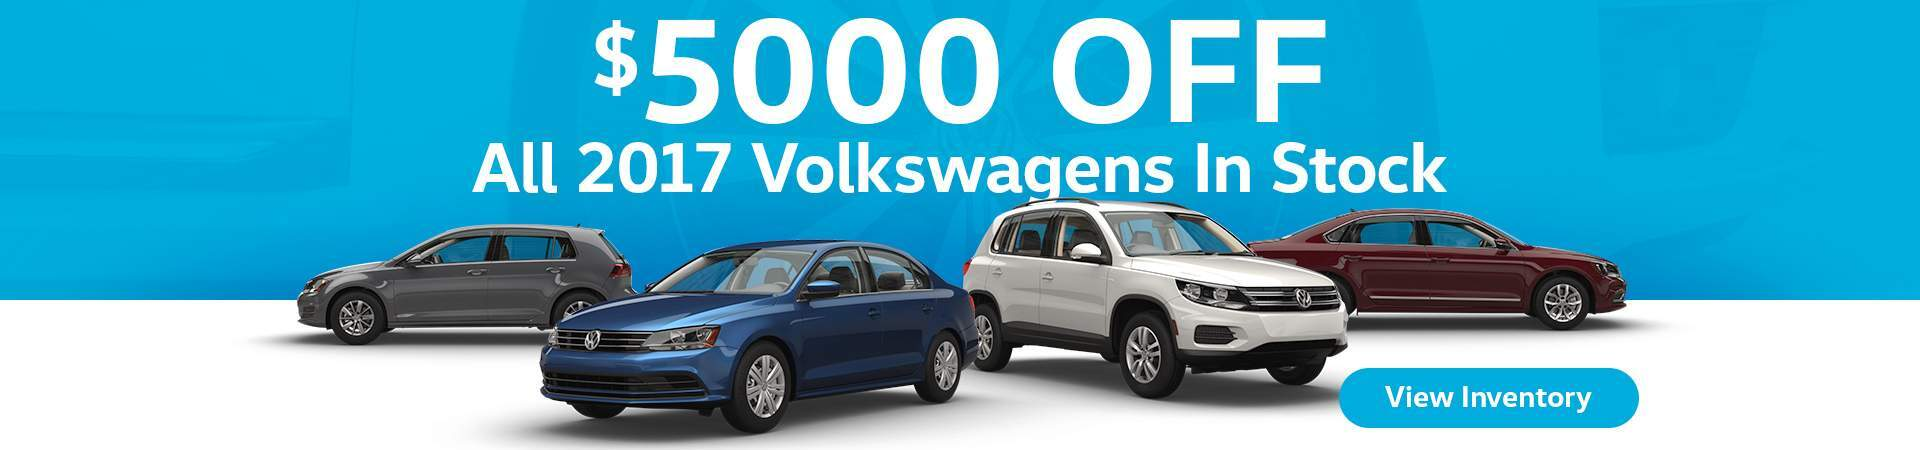 $5000 Off All 2017 VW In Stock